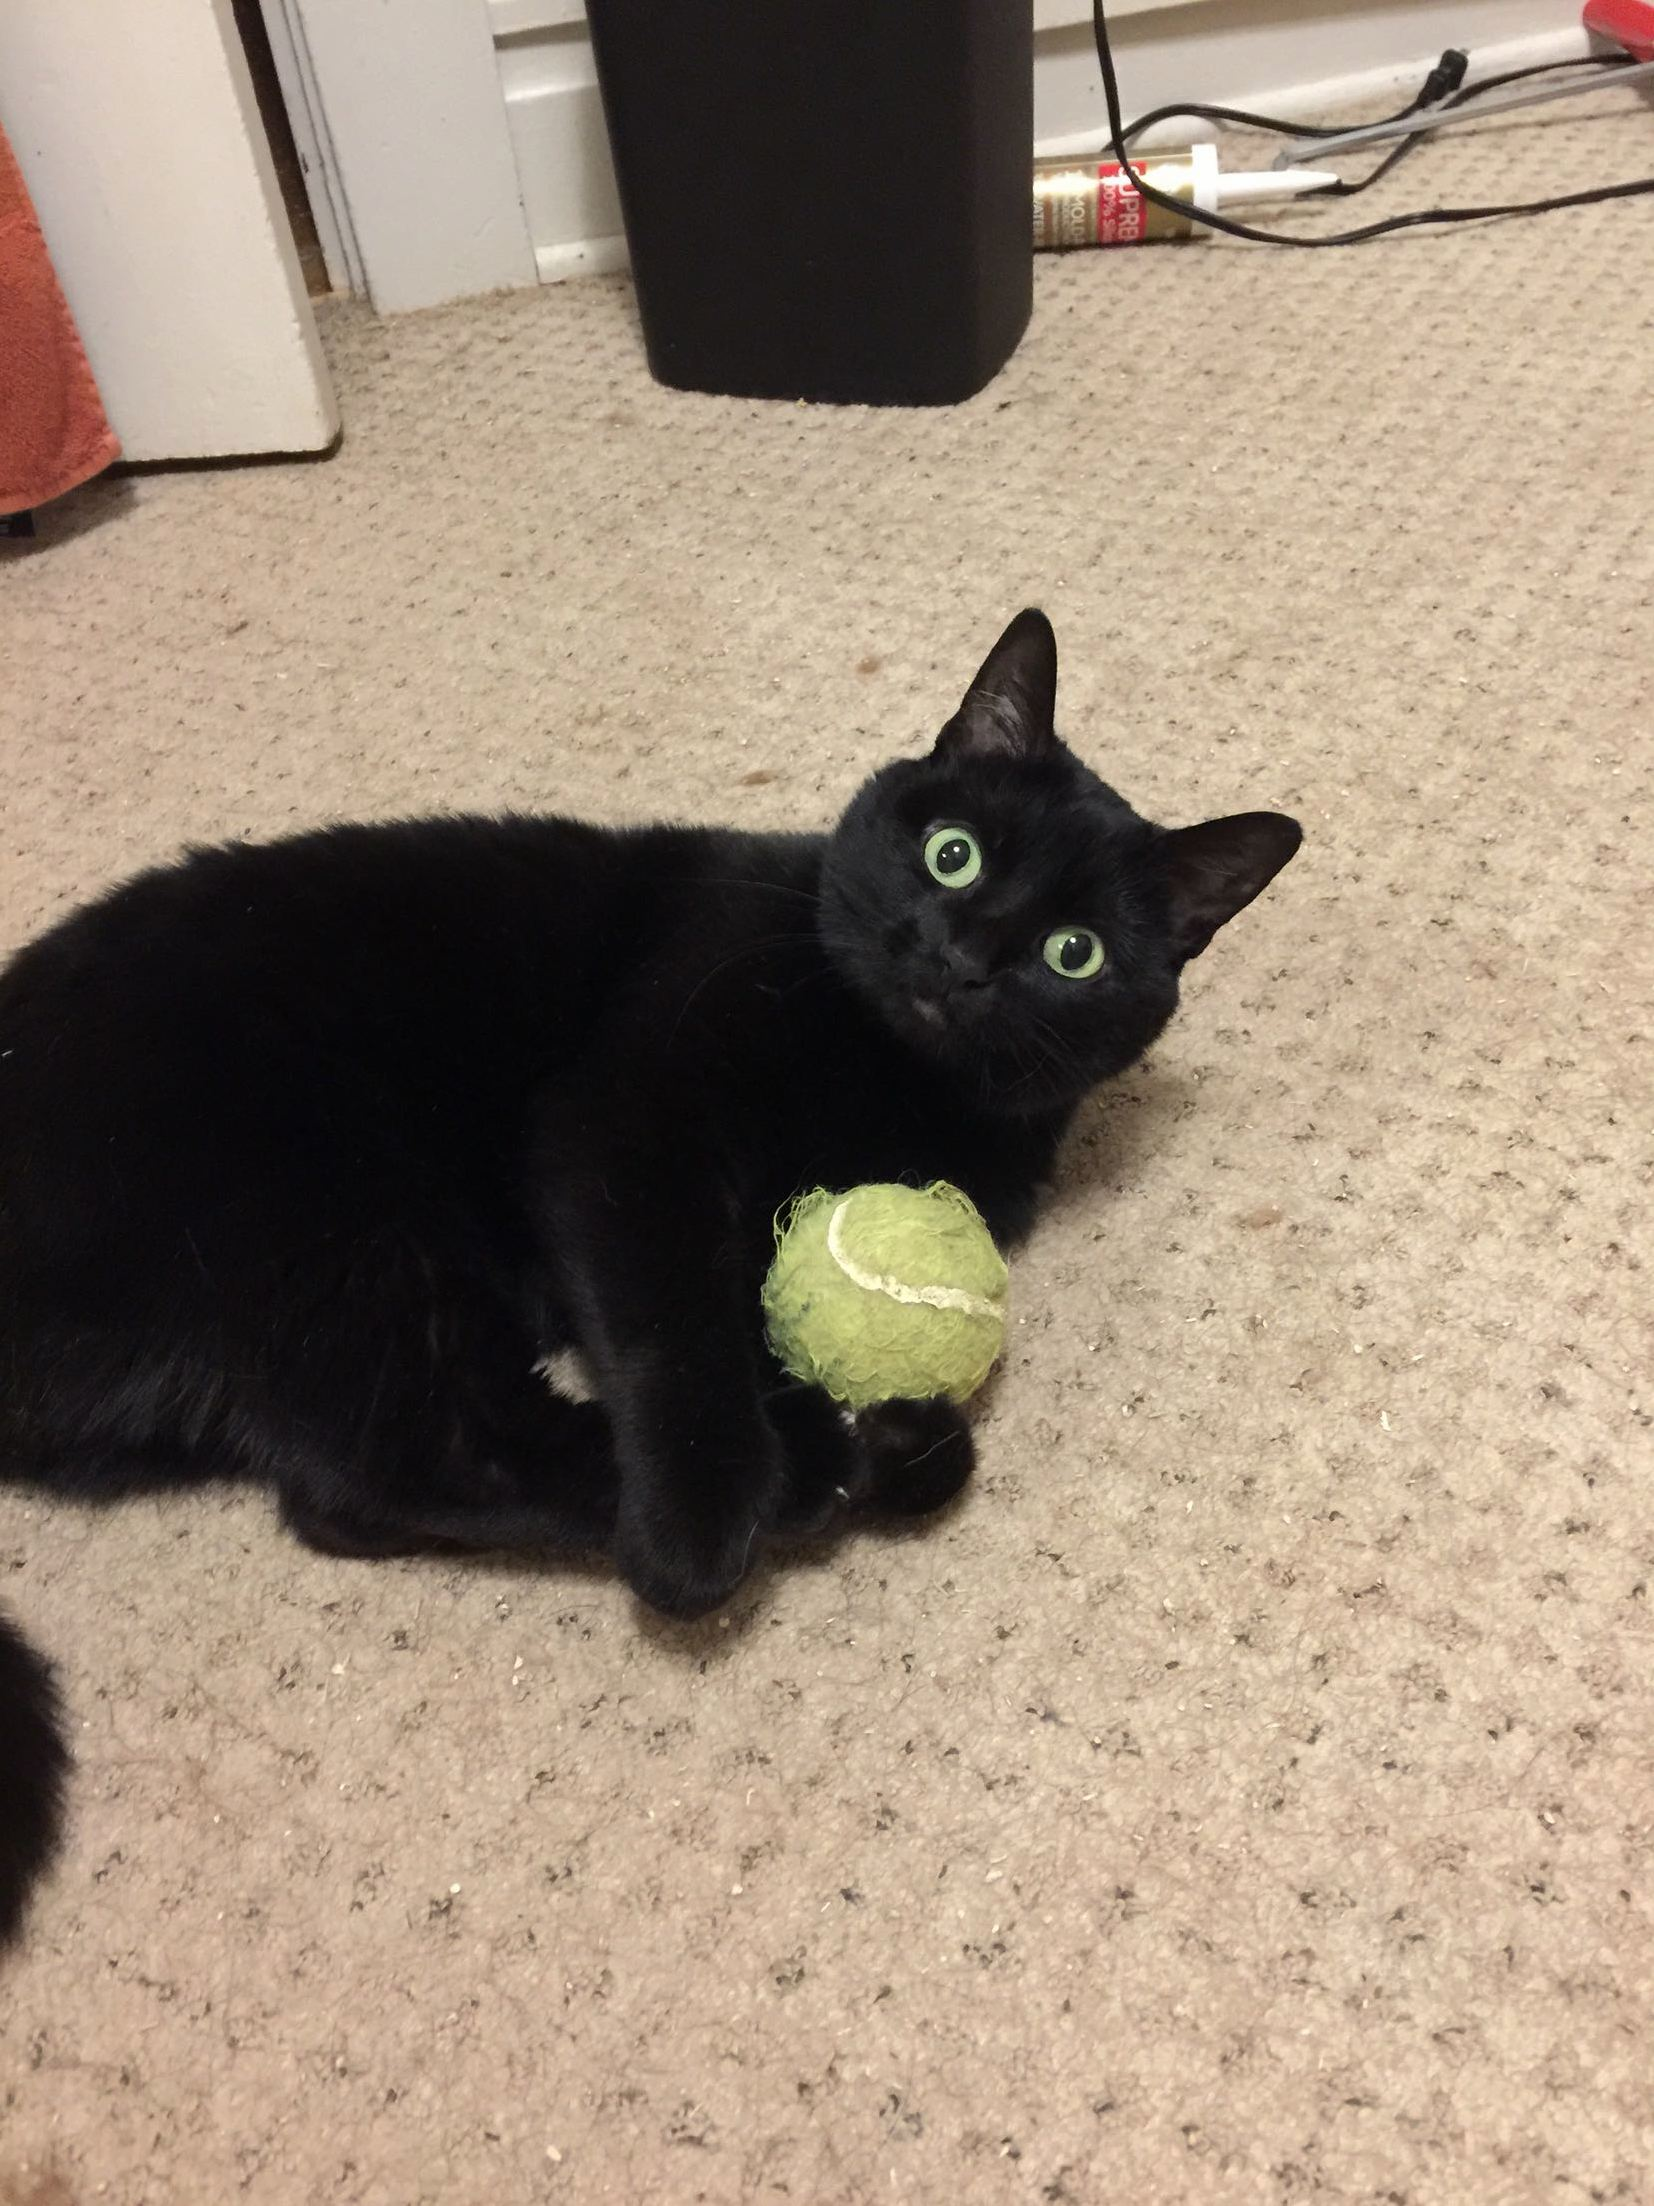 This is her favorite toy